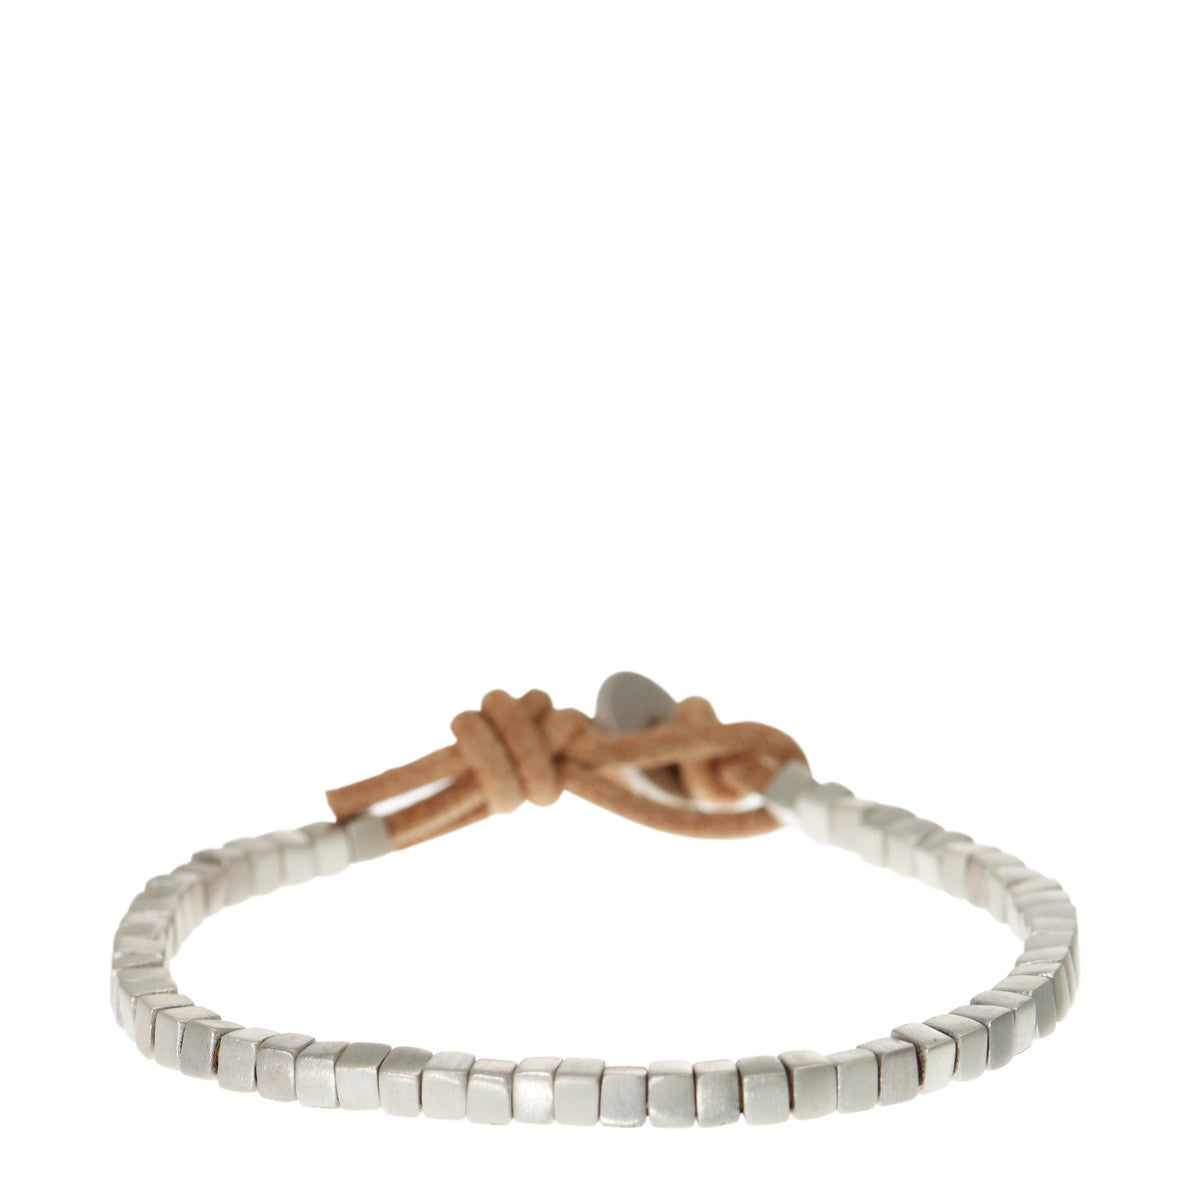 Sterling Silver Square Bead Bracelet on Natural Leather